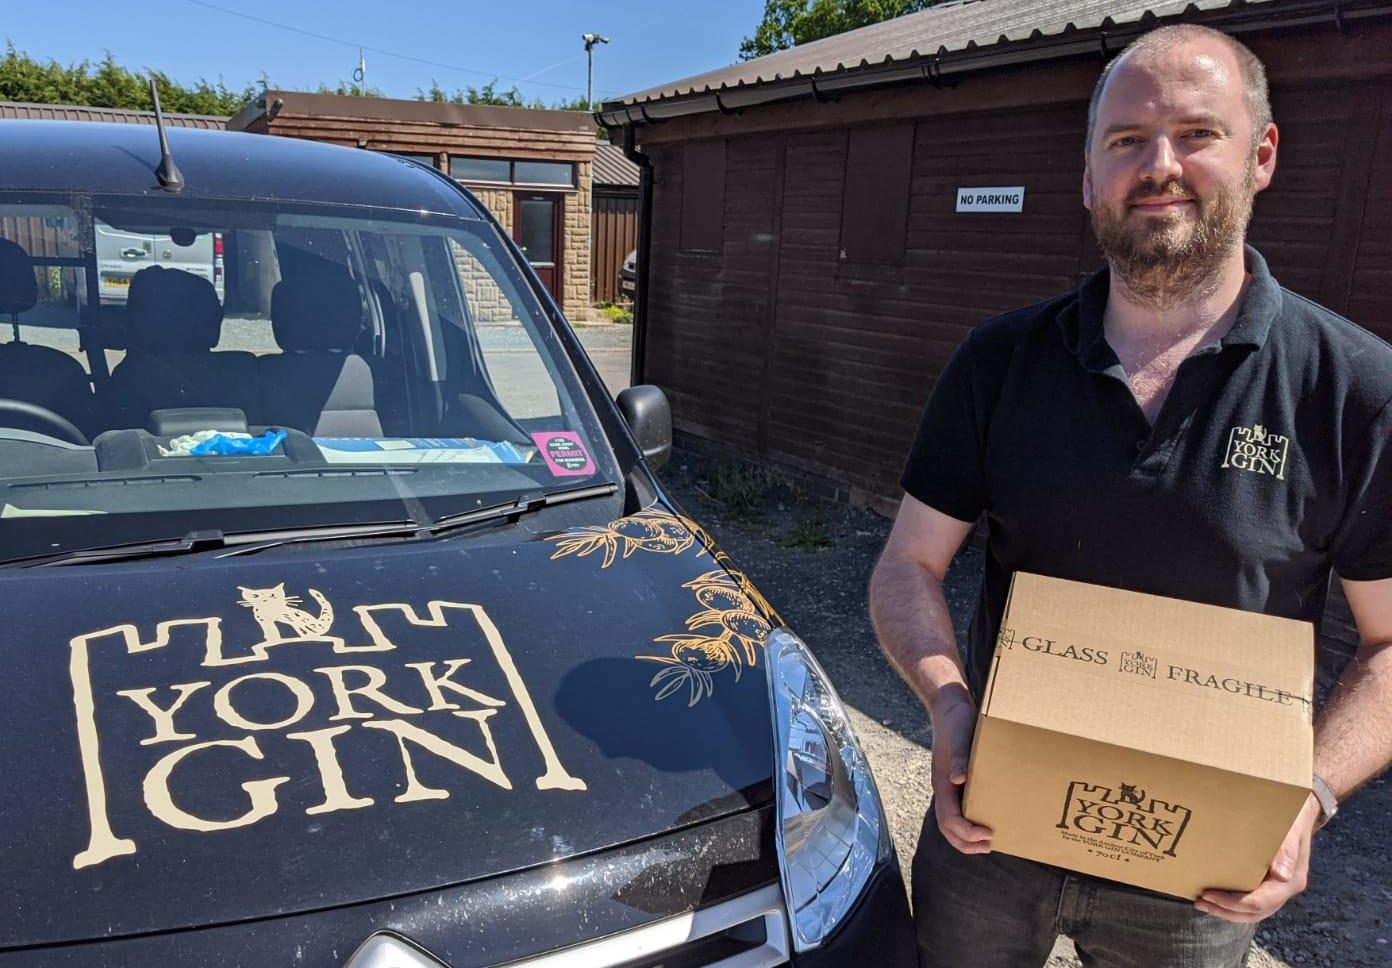 Harry next to York Gin van and holding box with paper tape